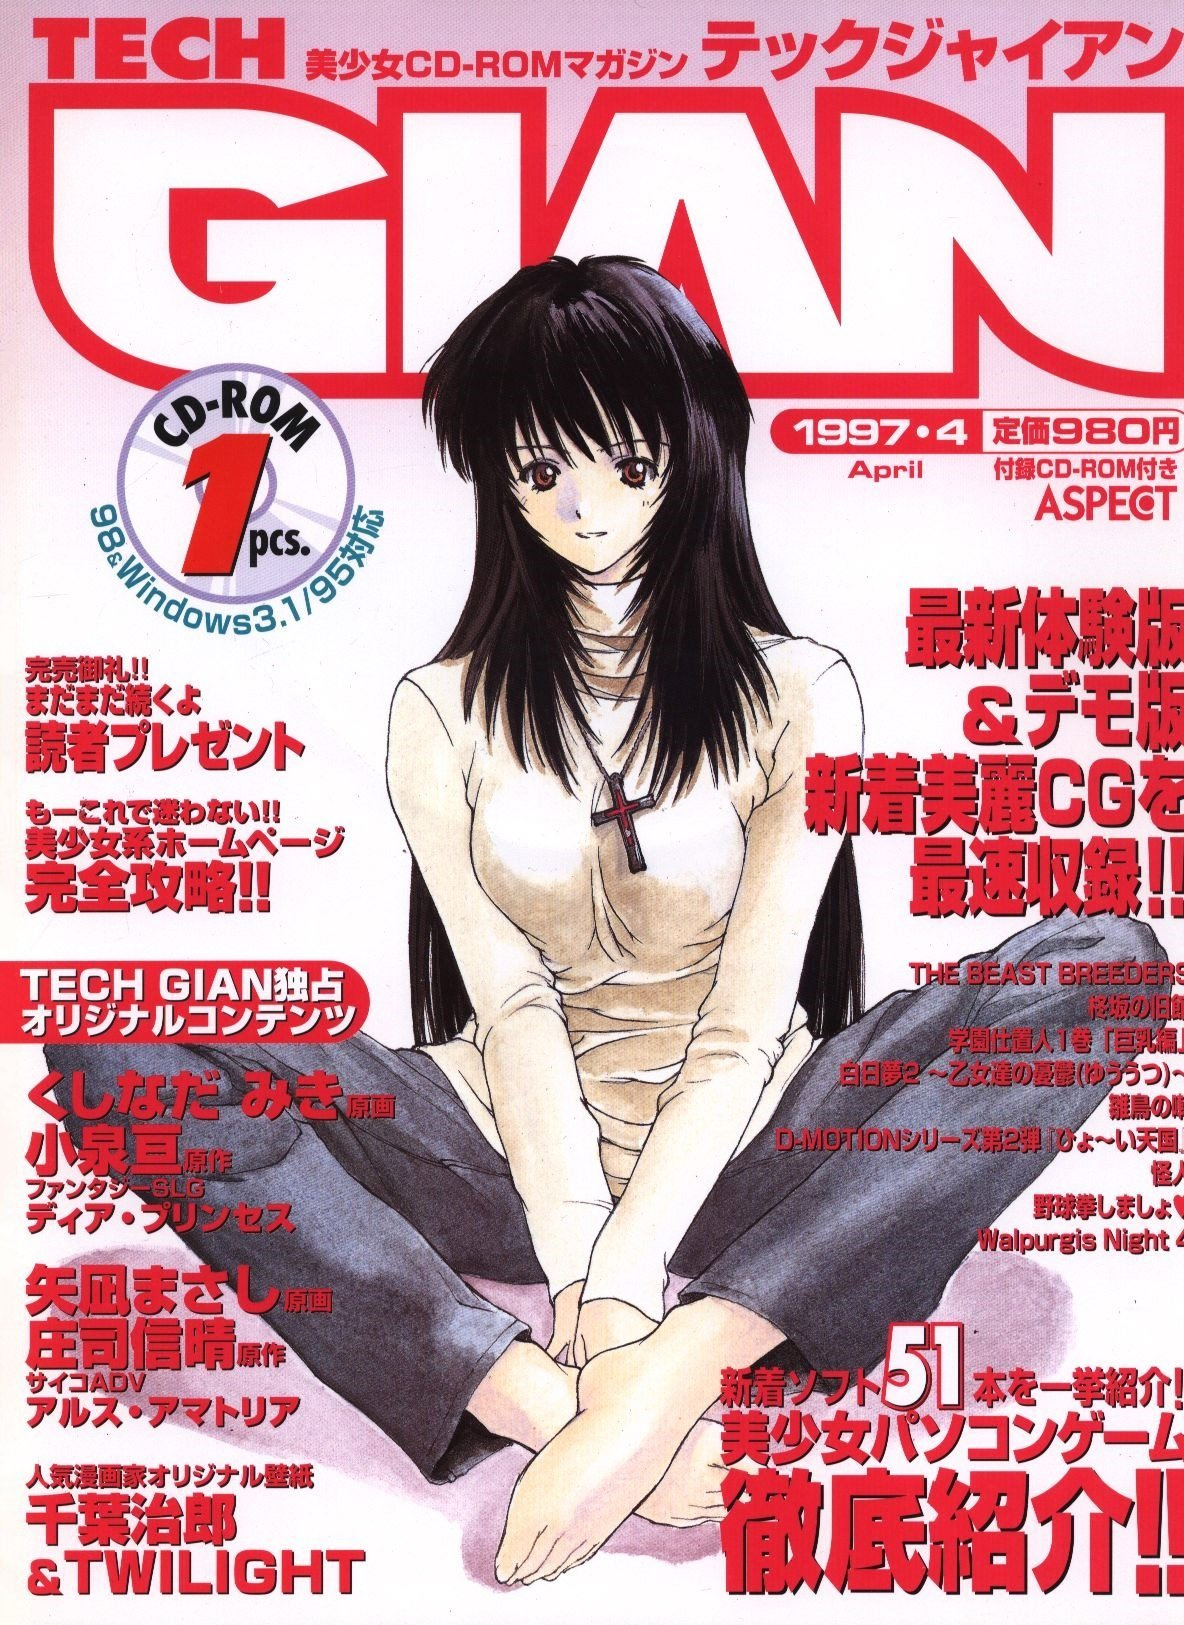 Tech Gian Issue 006 (April 1997)